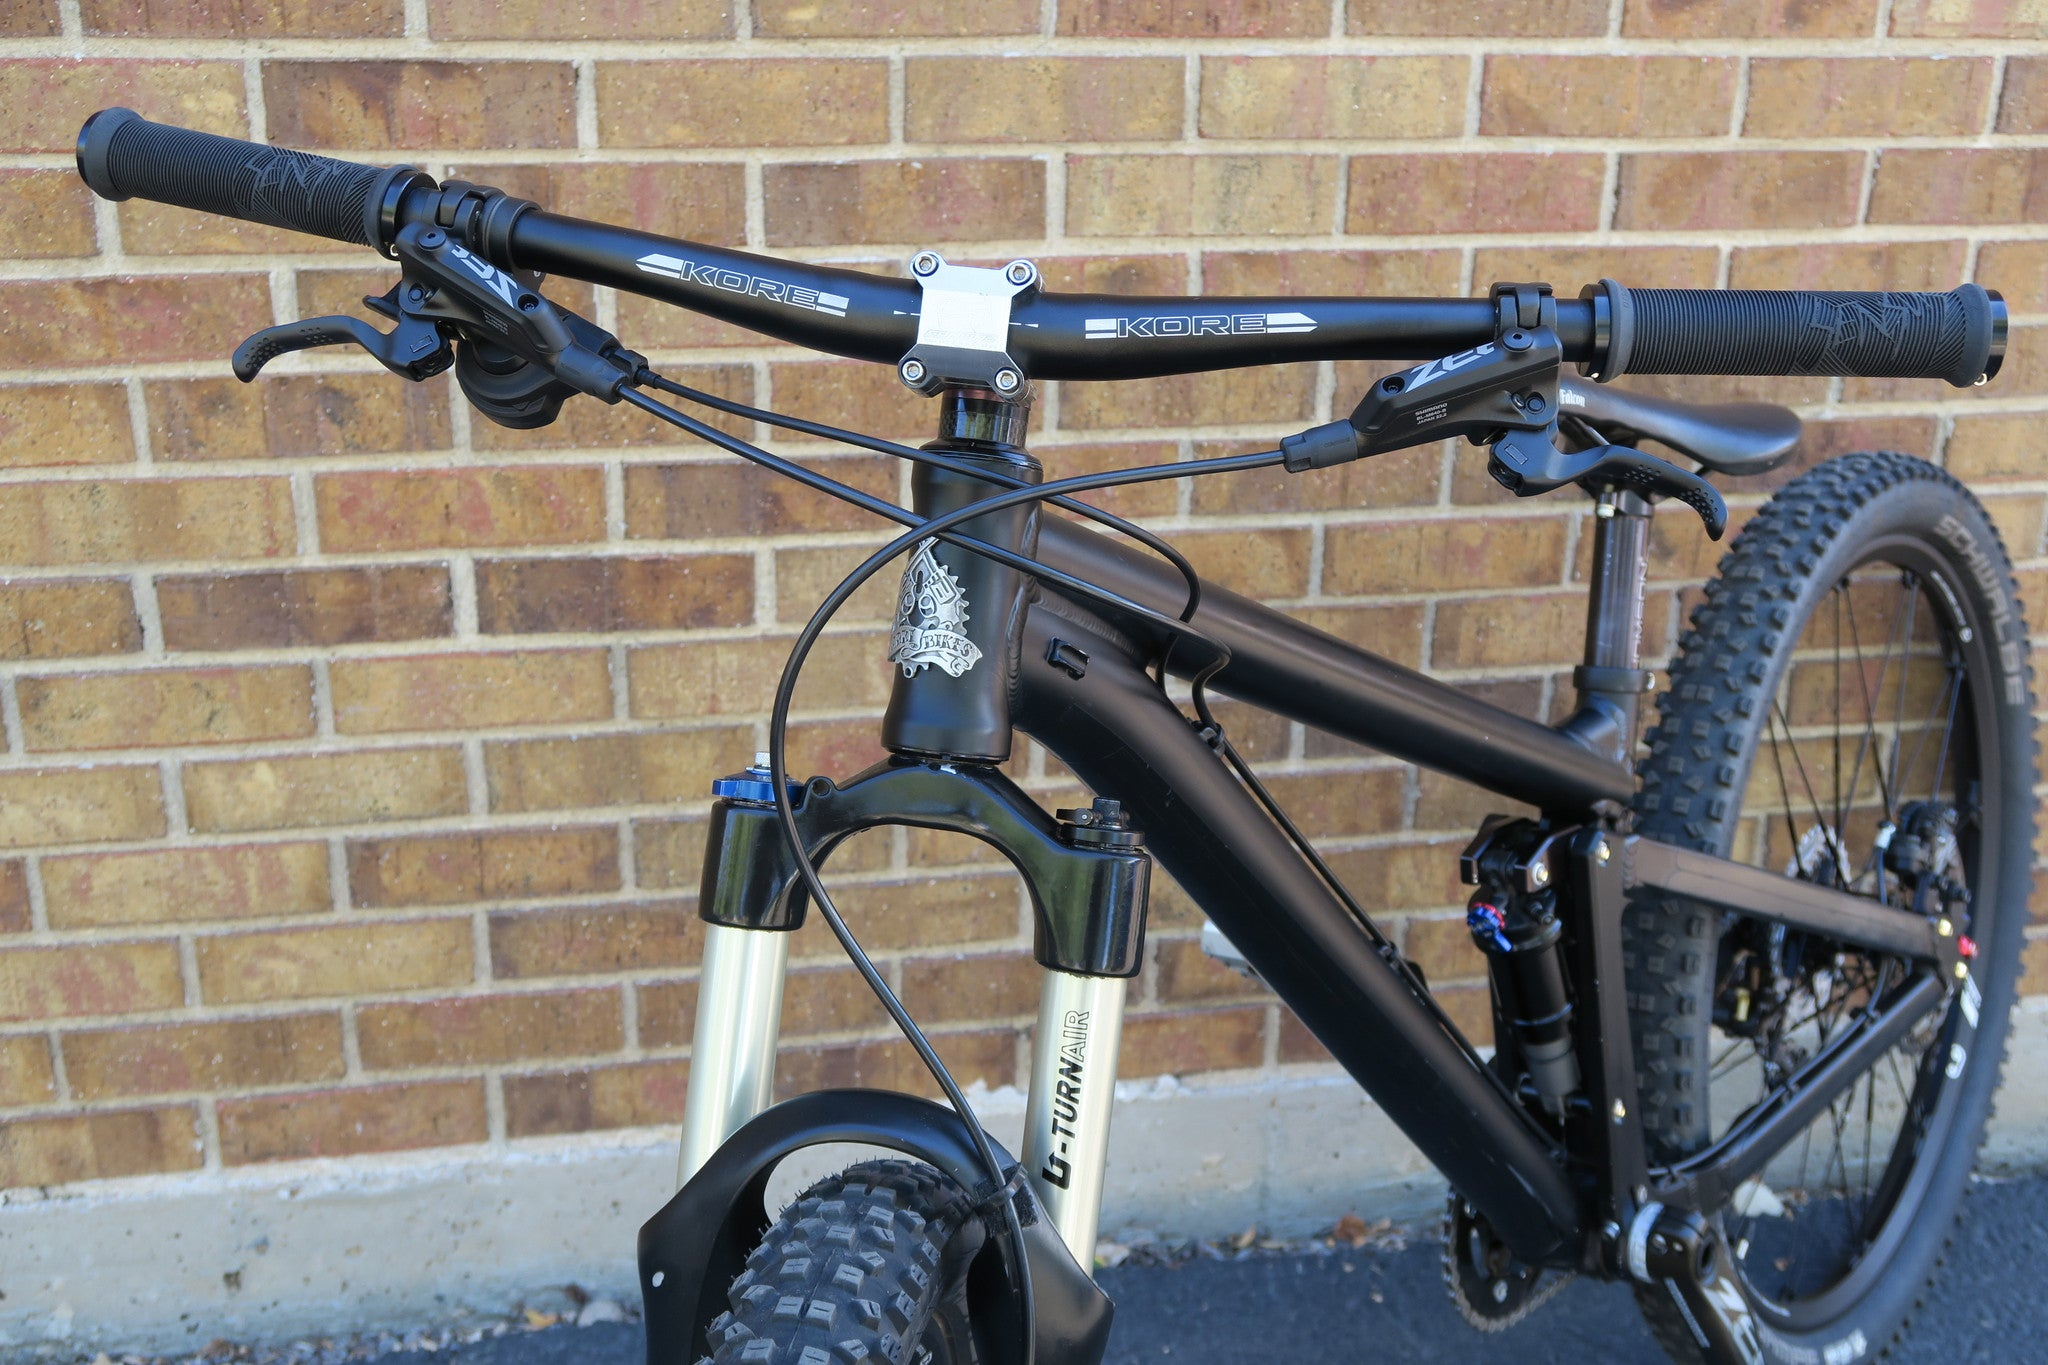 2014 BLKMRKT KILLSWITCH 4X, DIRT JUMPER